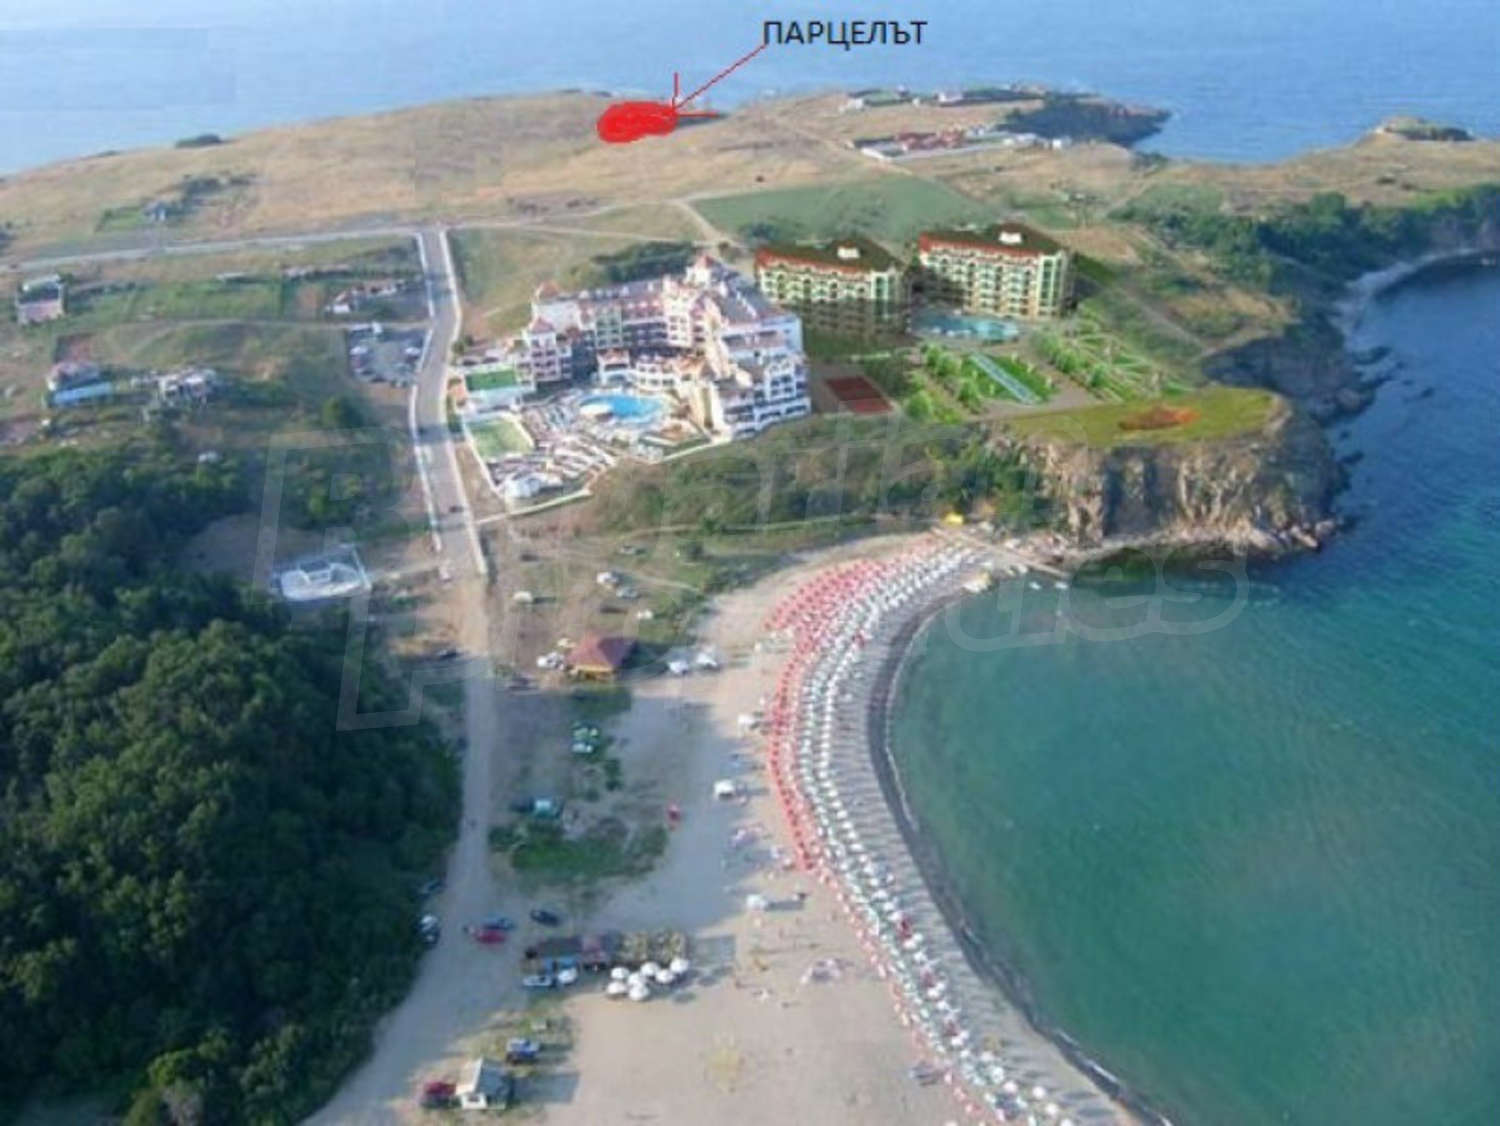 Panoramic Property Development : Development land for sale in sinemorets butamyata beach